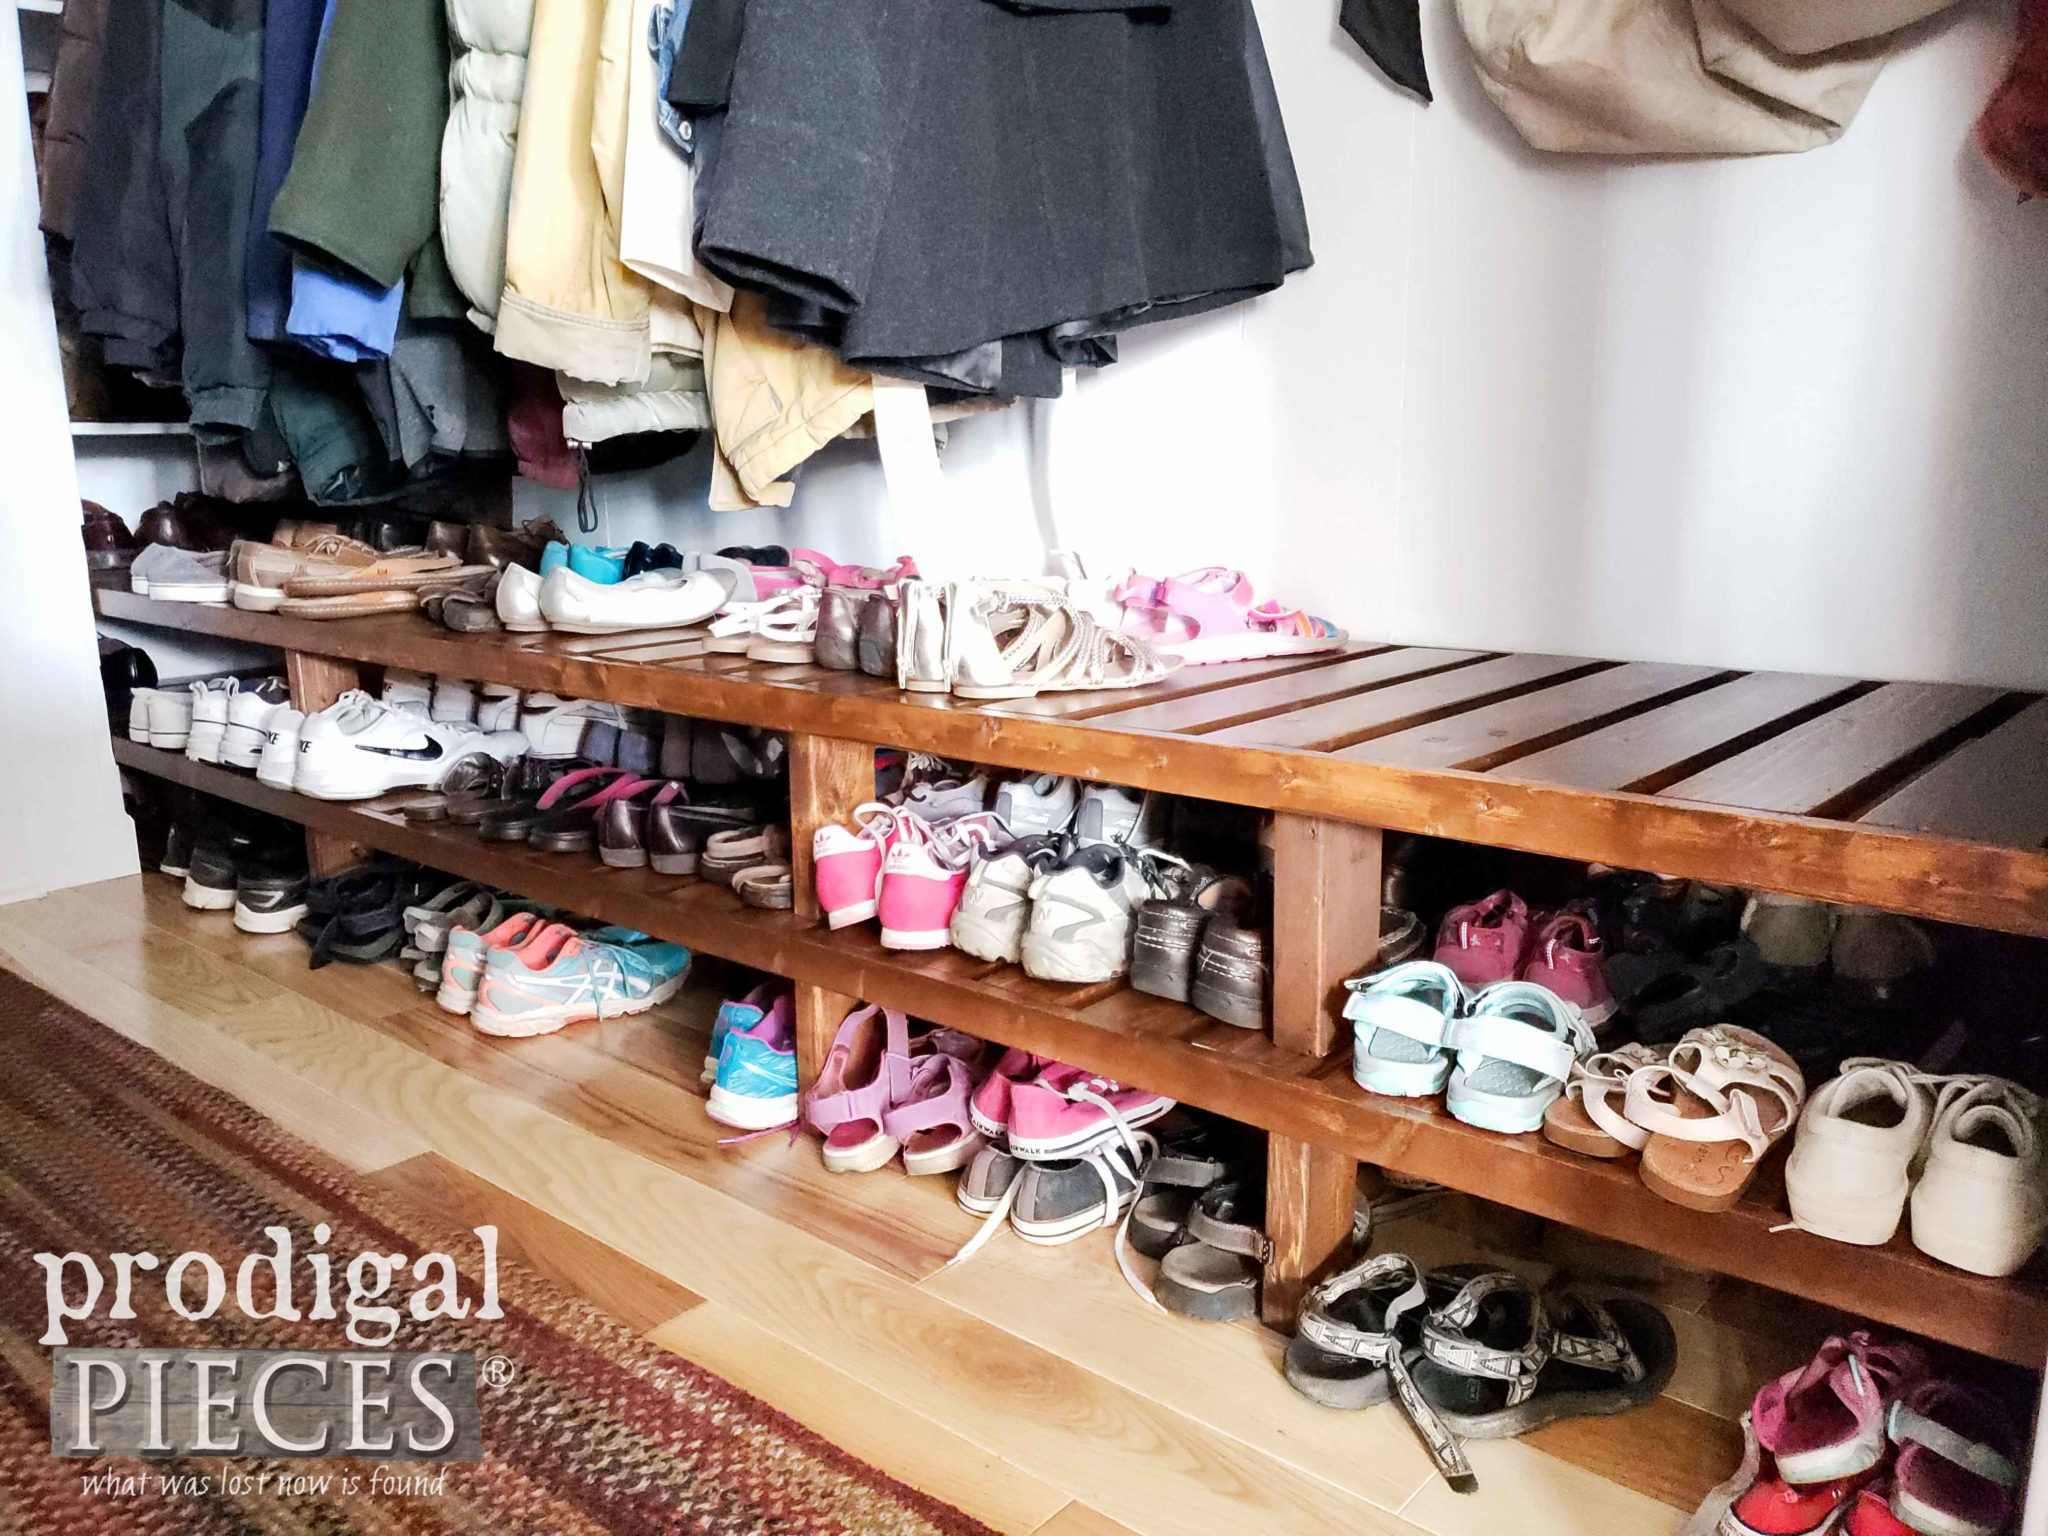 Custom Built-In Farmhouse Style Shoe Storage by Larissa of Prodigal Pieces | prodigalpieces.com #prodigalpieces #diy #home #storage #farmhouse #homedecor #homeimprovement